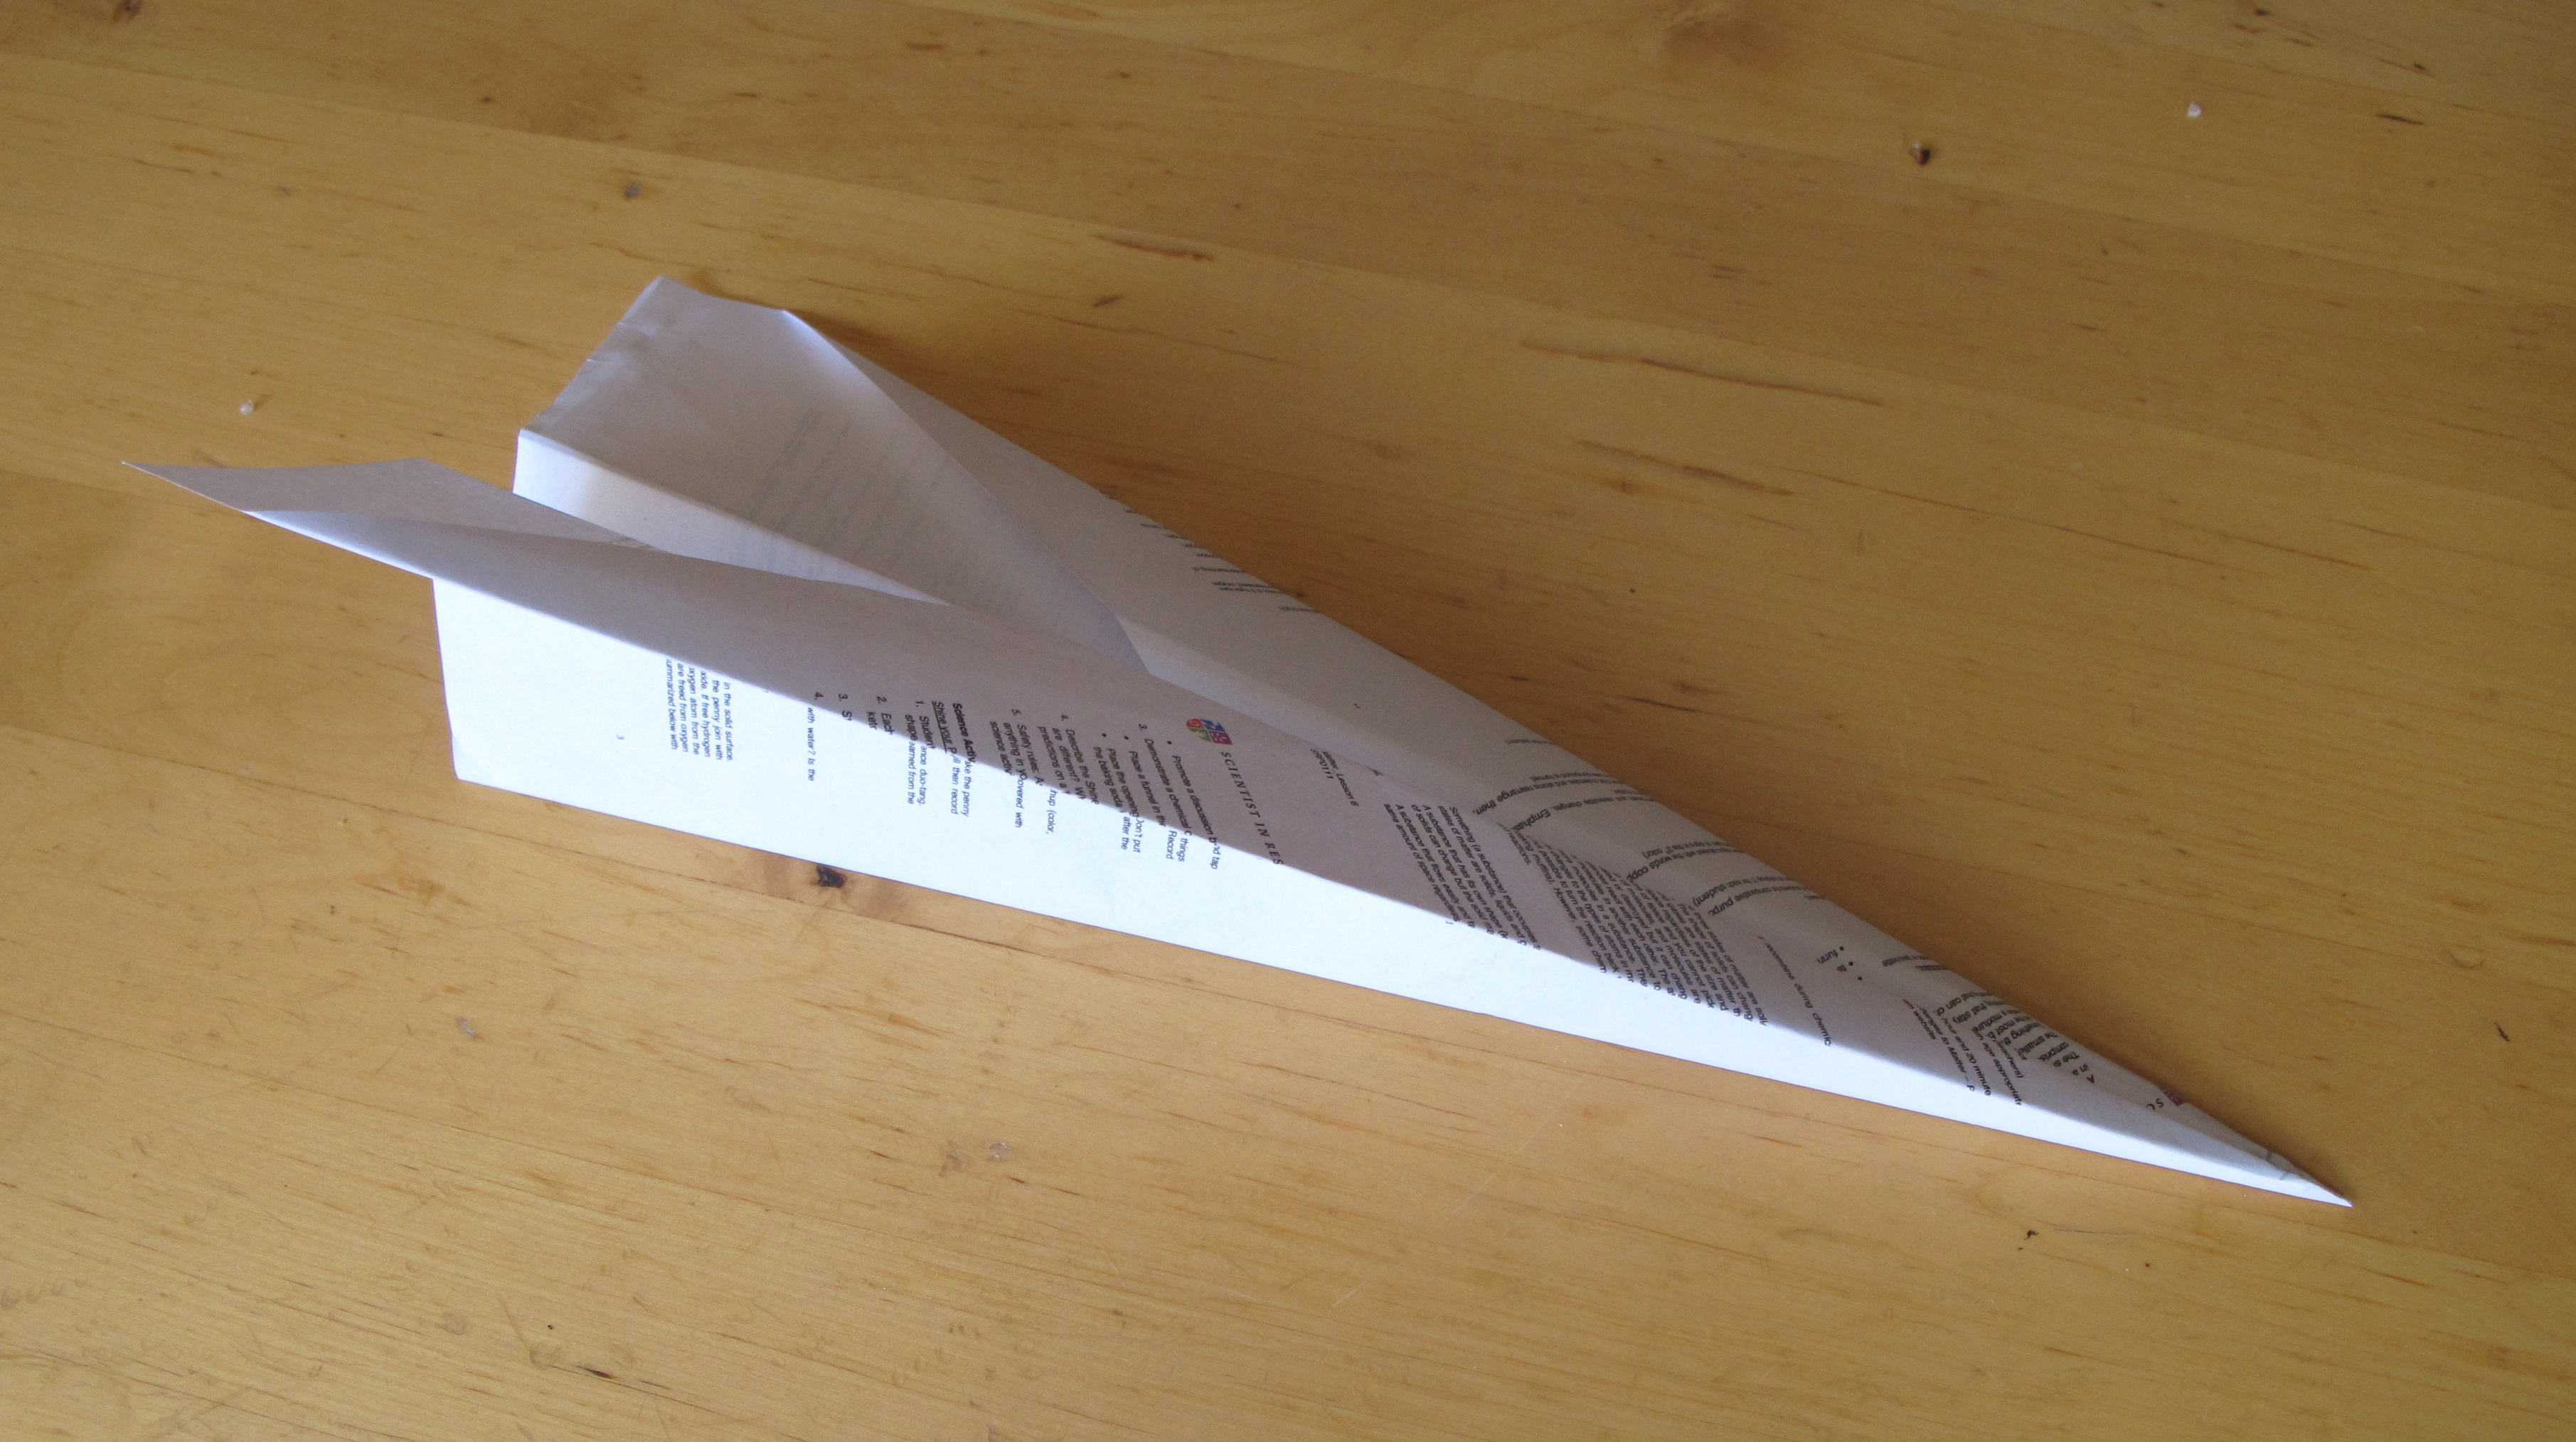 Paper airplanes | ingridscience.ca | 3622 x 2028 jpeg 1421kB